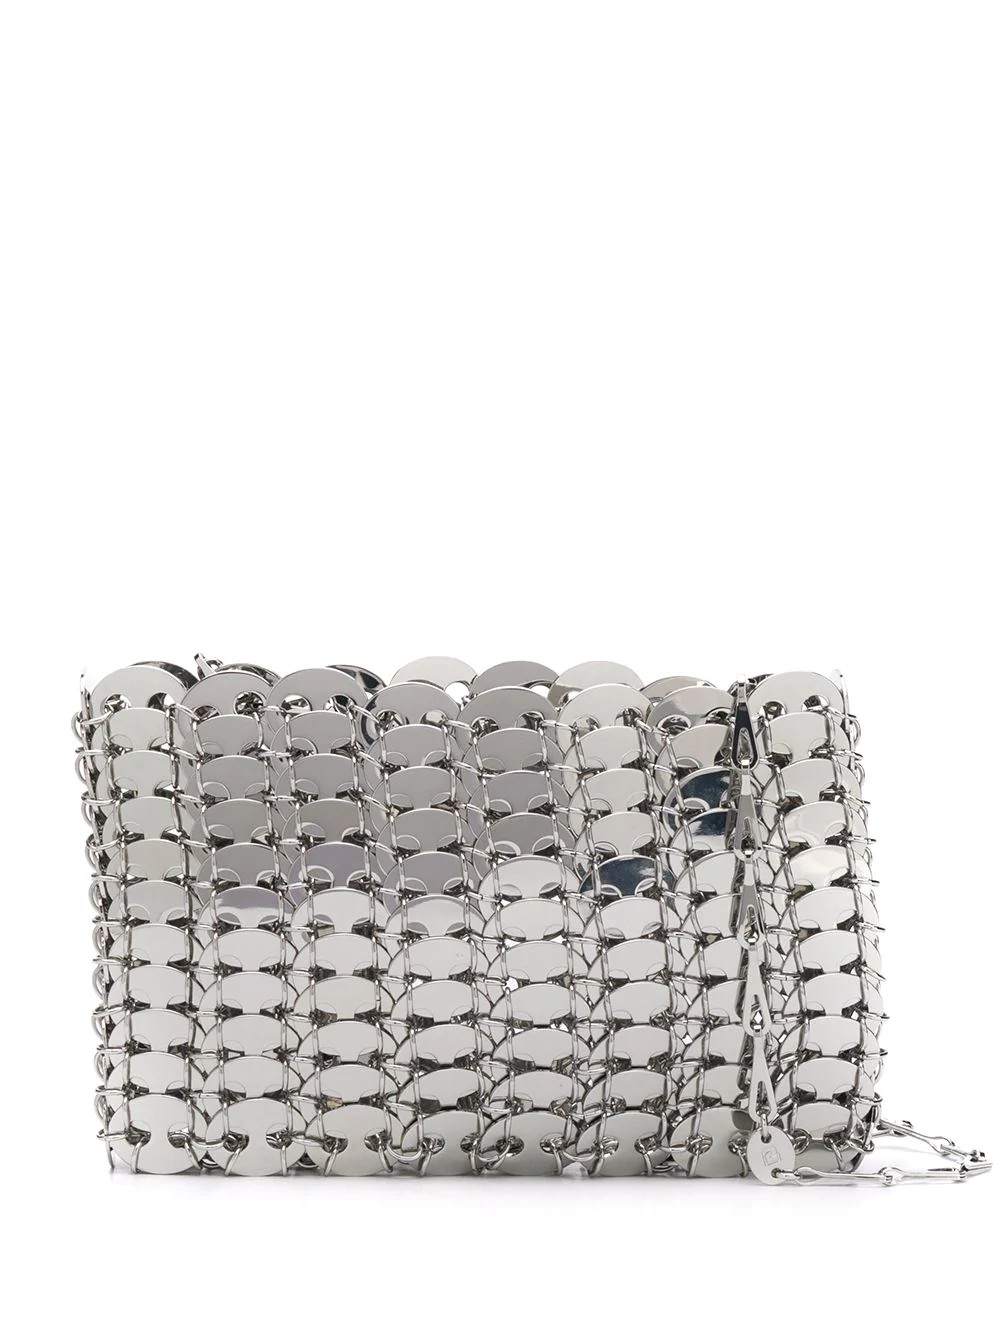 SAC SOIR EVENING BAG